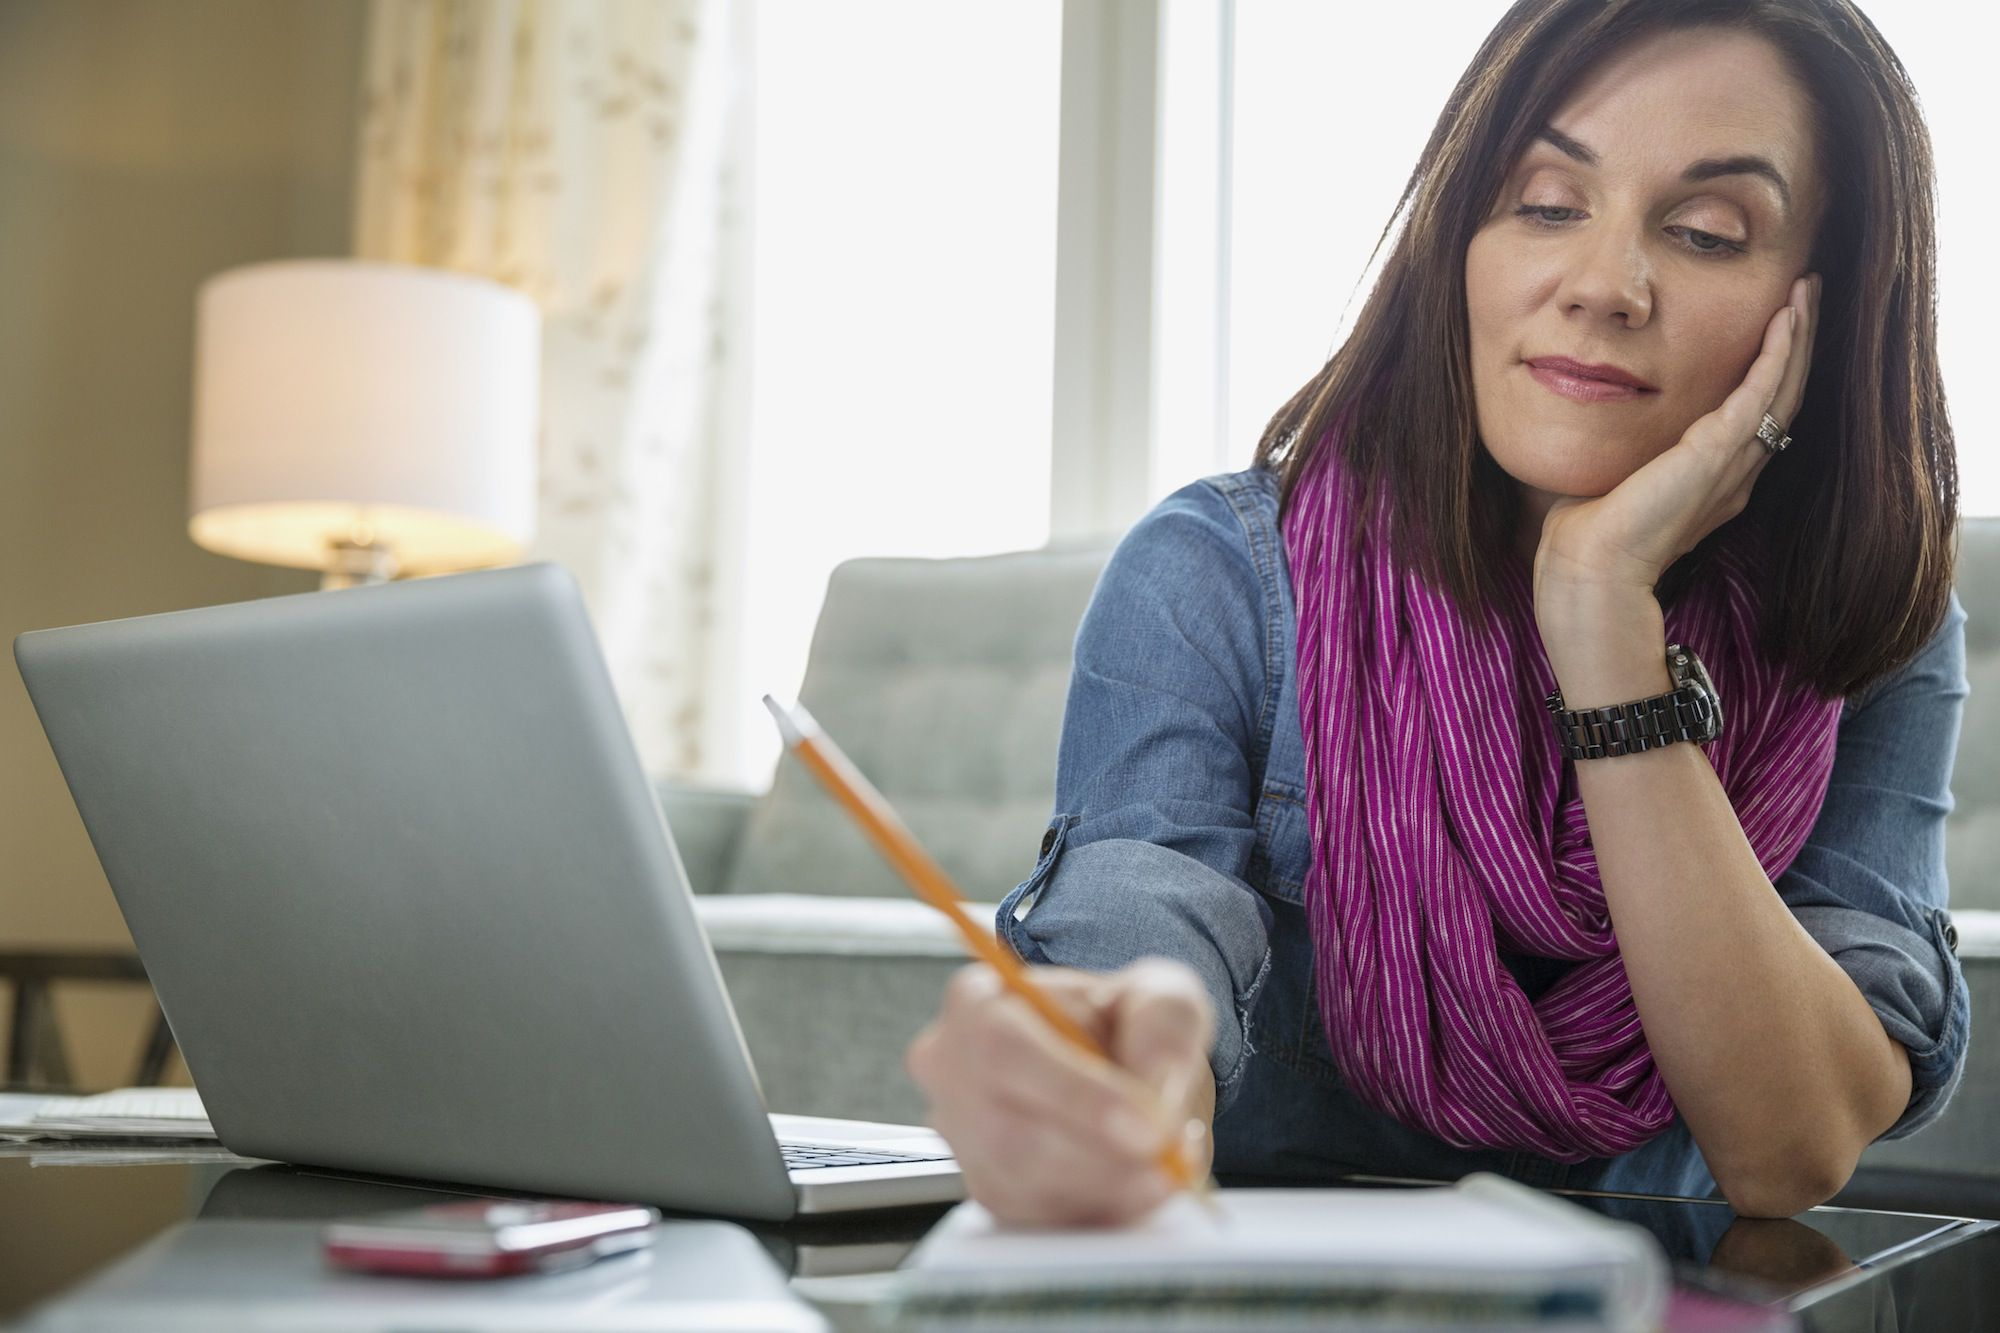 Learn How To Practice Point Of View Writing Exercises